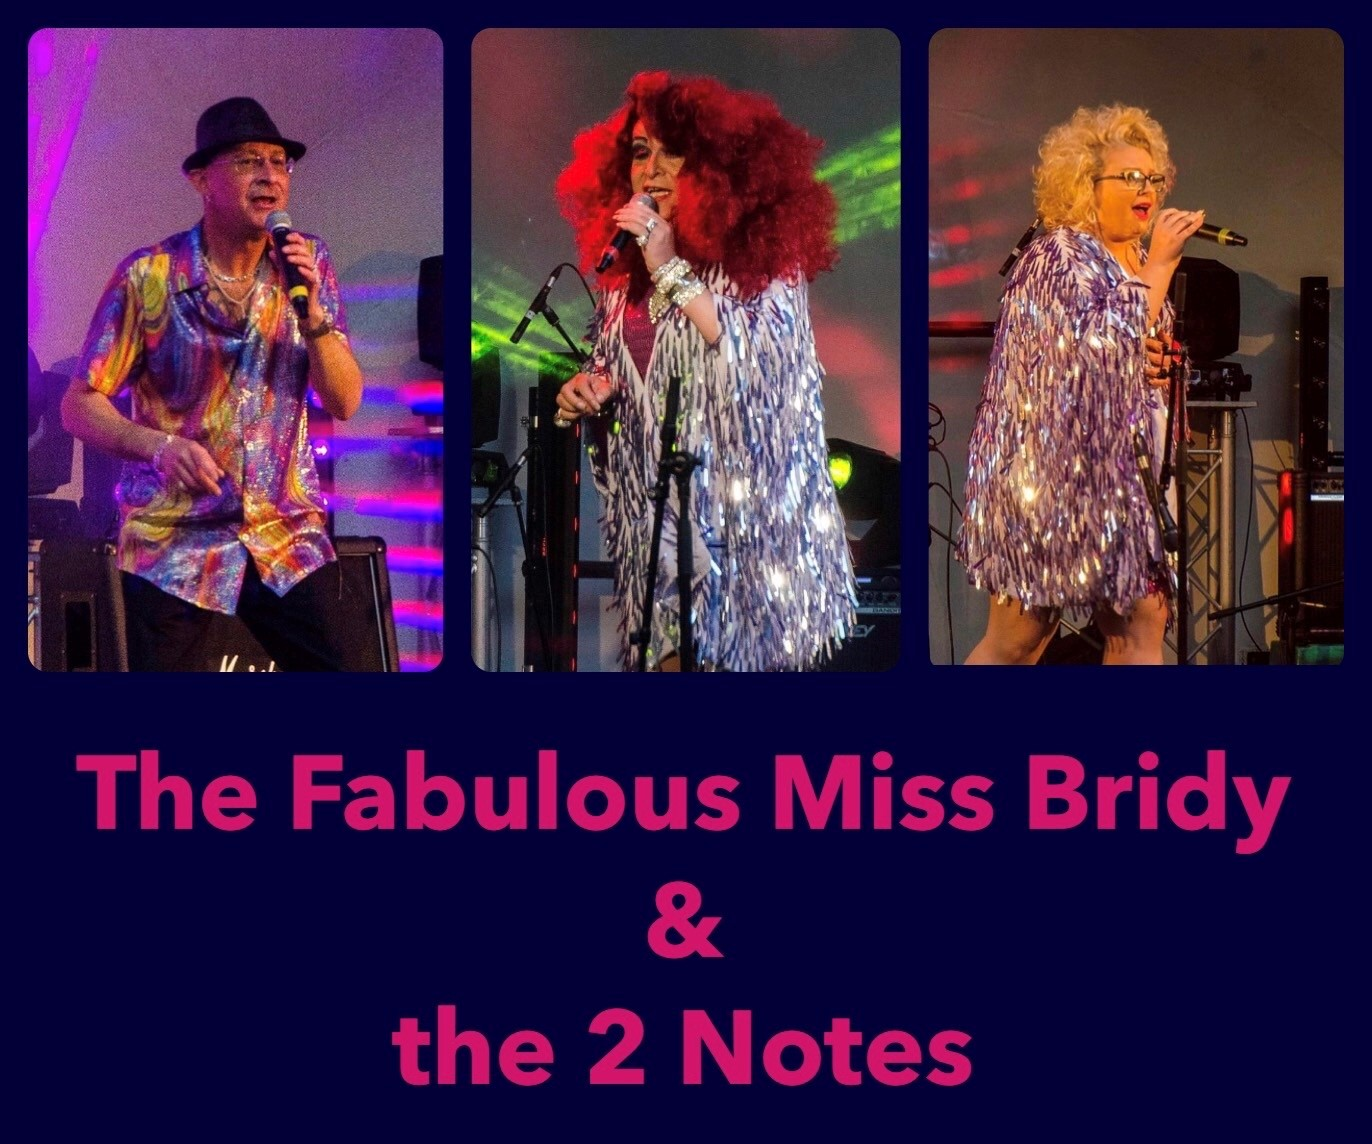 The Fabulous Miss Bridy & the 2 Notes